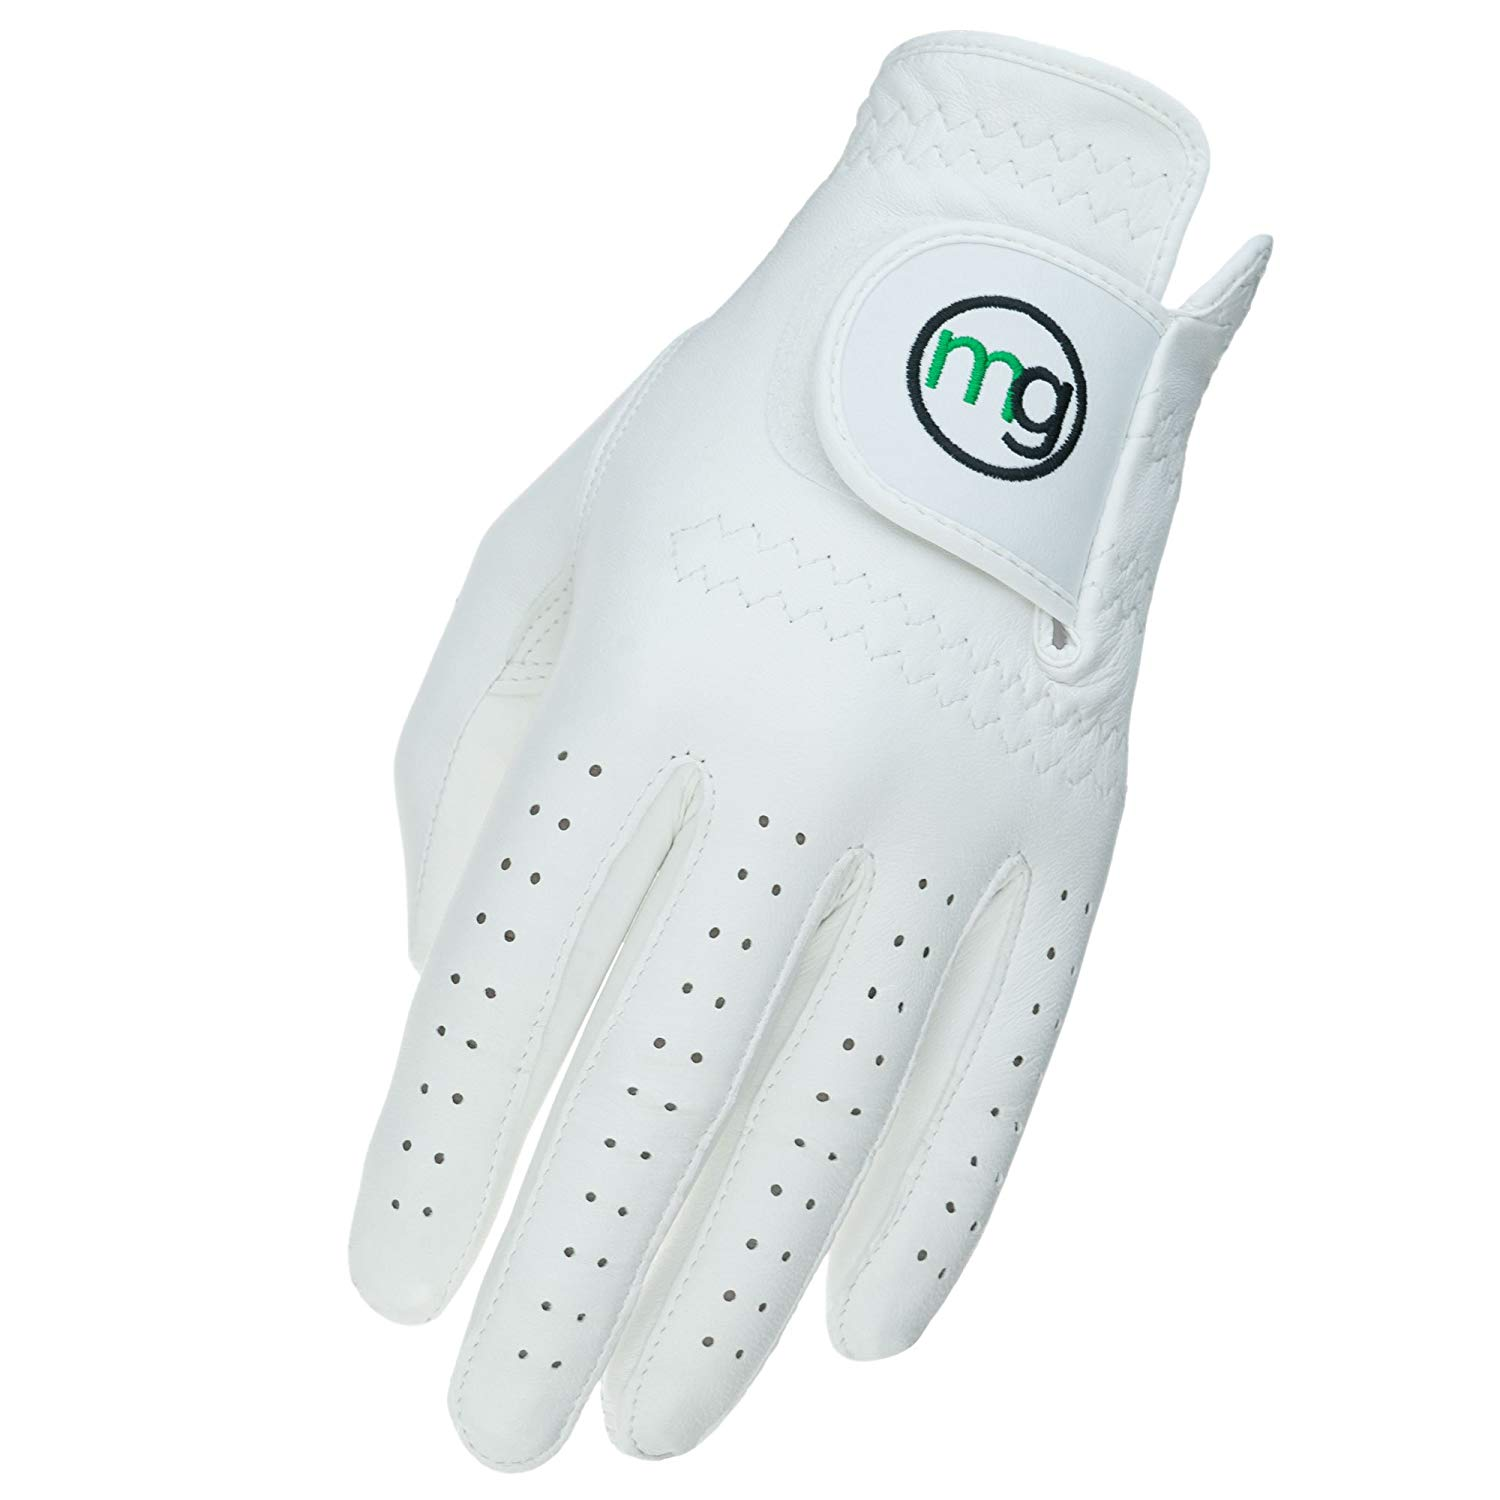 MG Golf DynaGrip All-Cabretta Leather Golf Glove (Ladies Sizes)